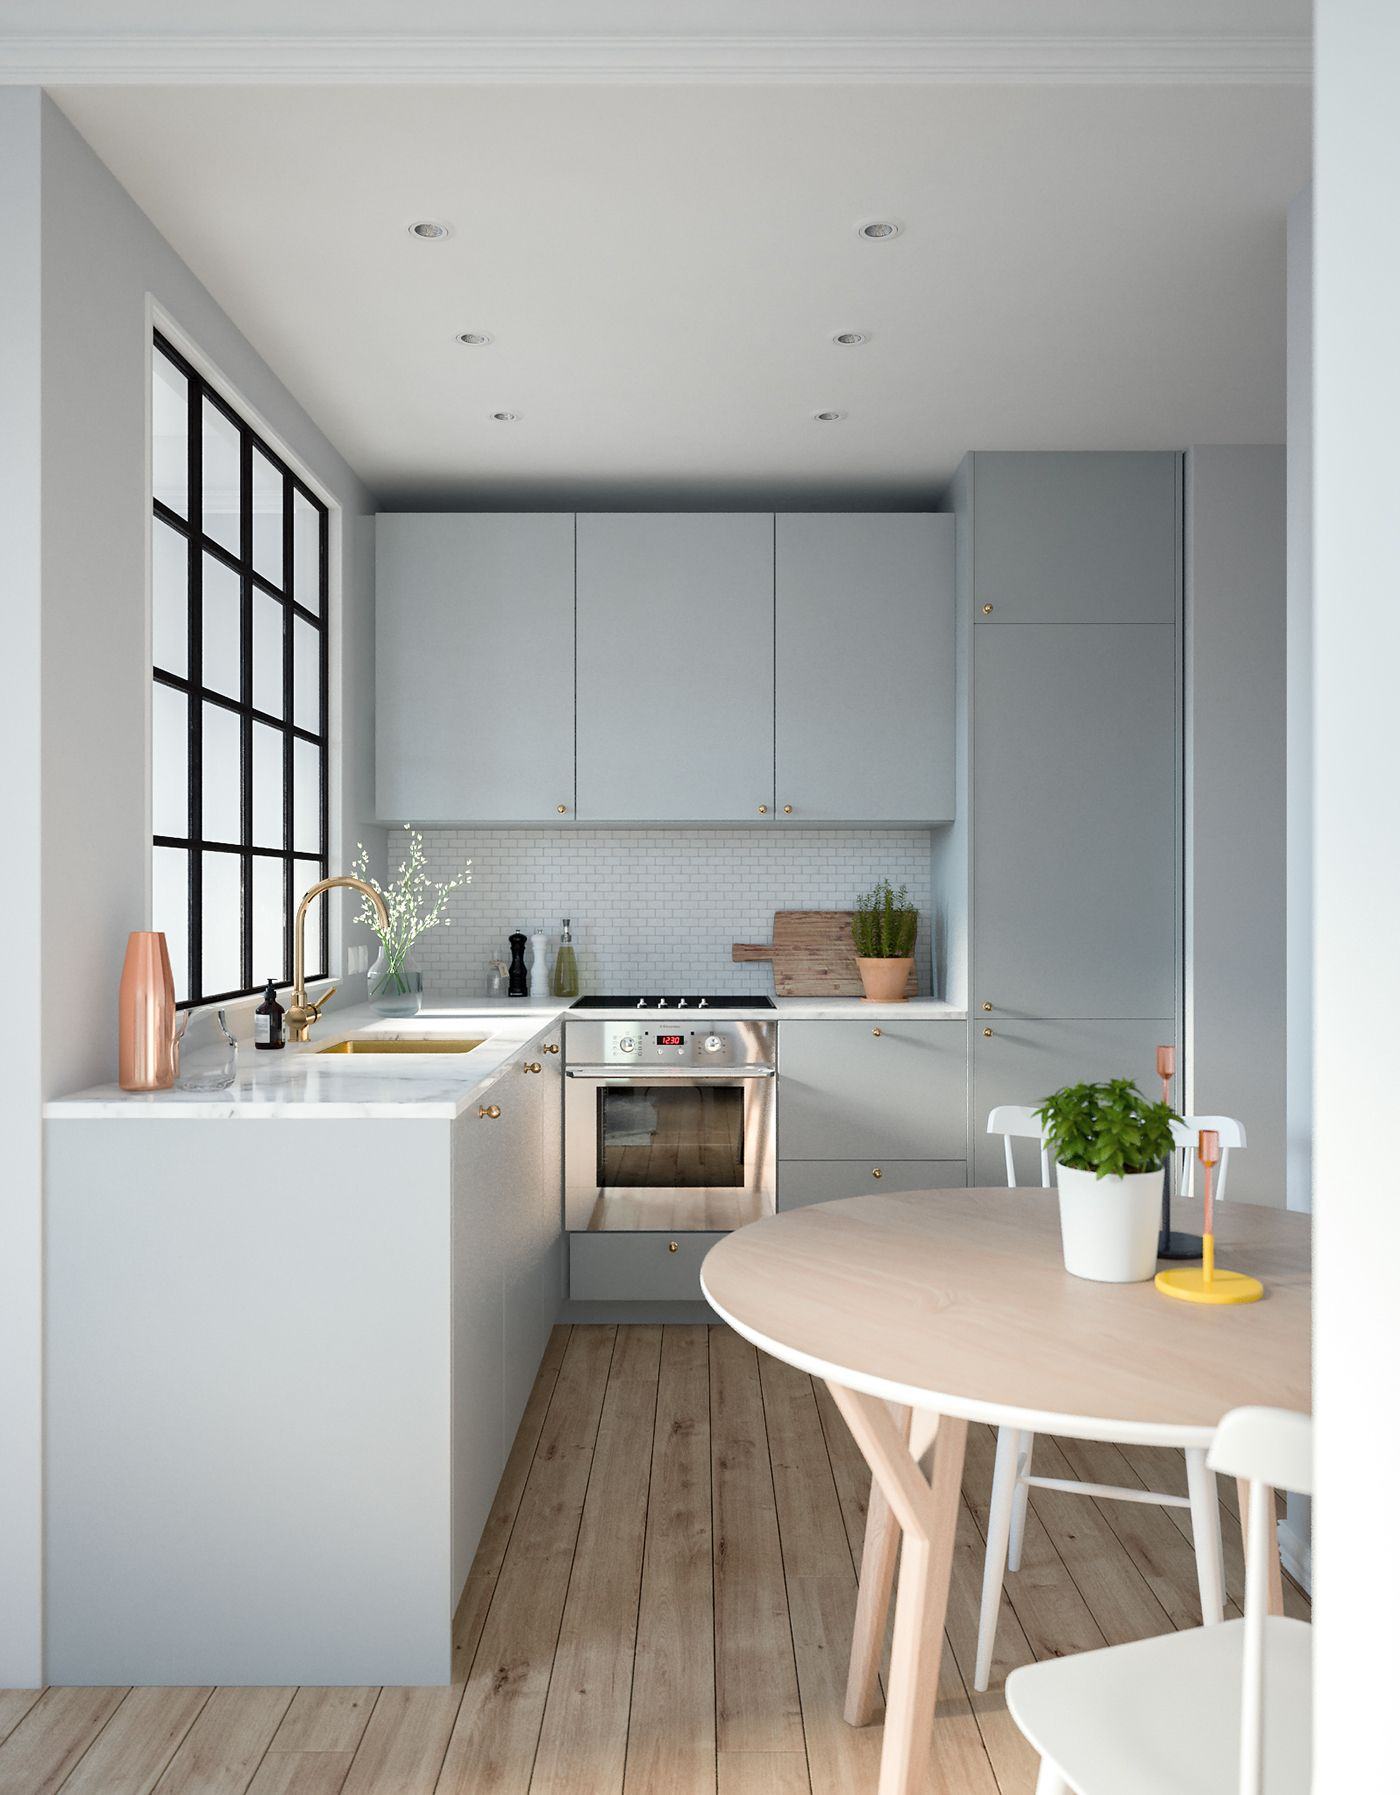 Small and Cozy Apartment on Behance in 2020 | Kitchen ...